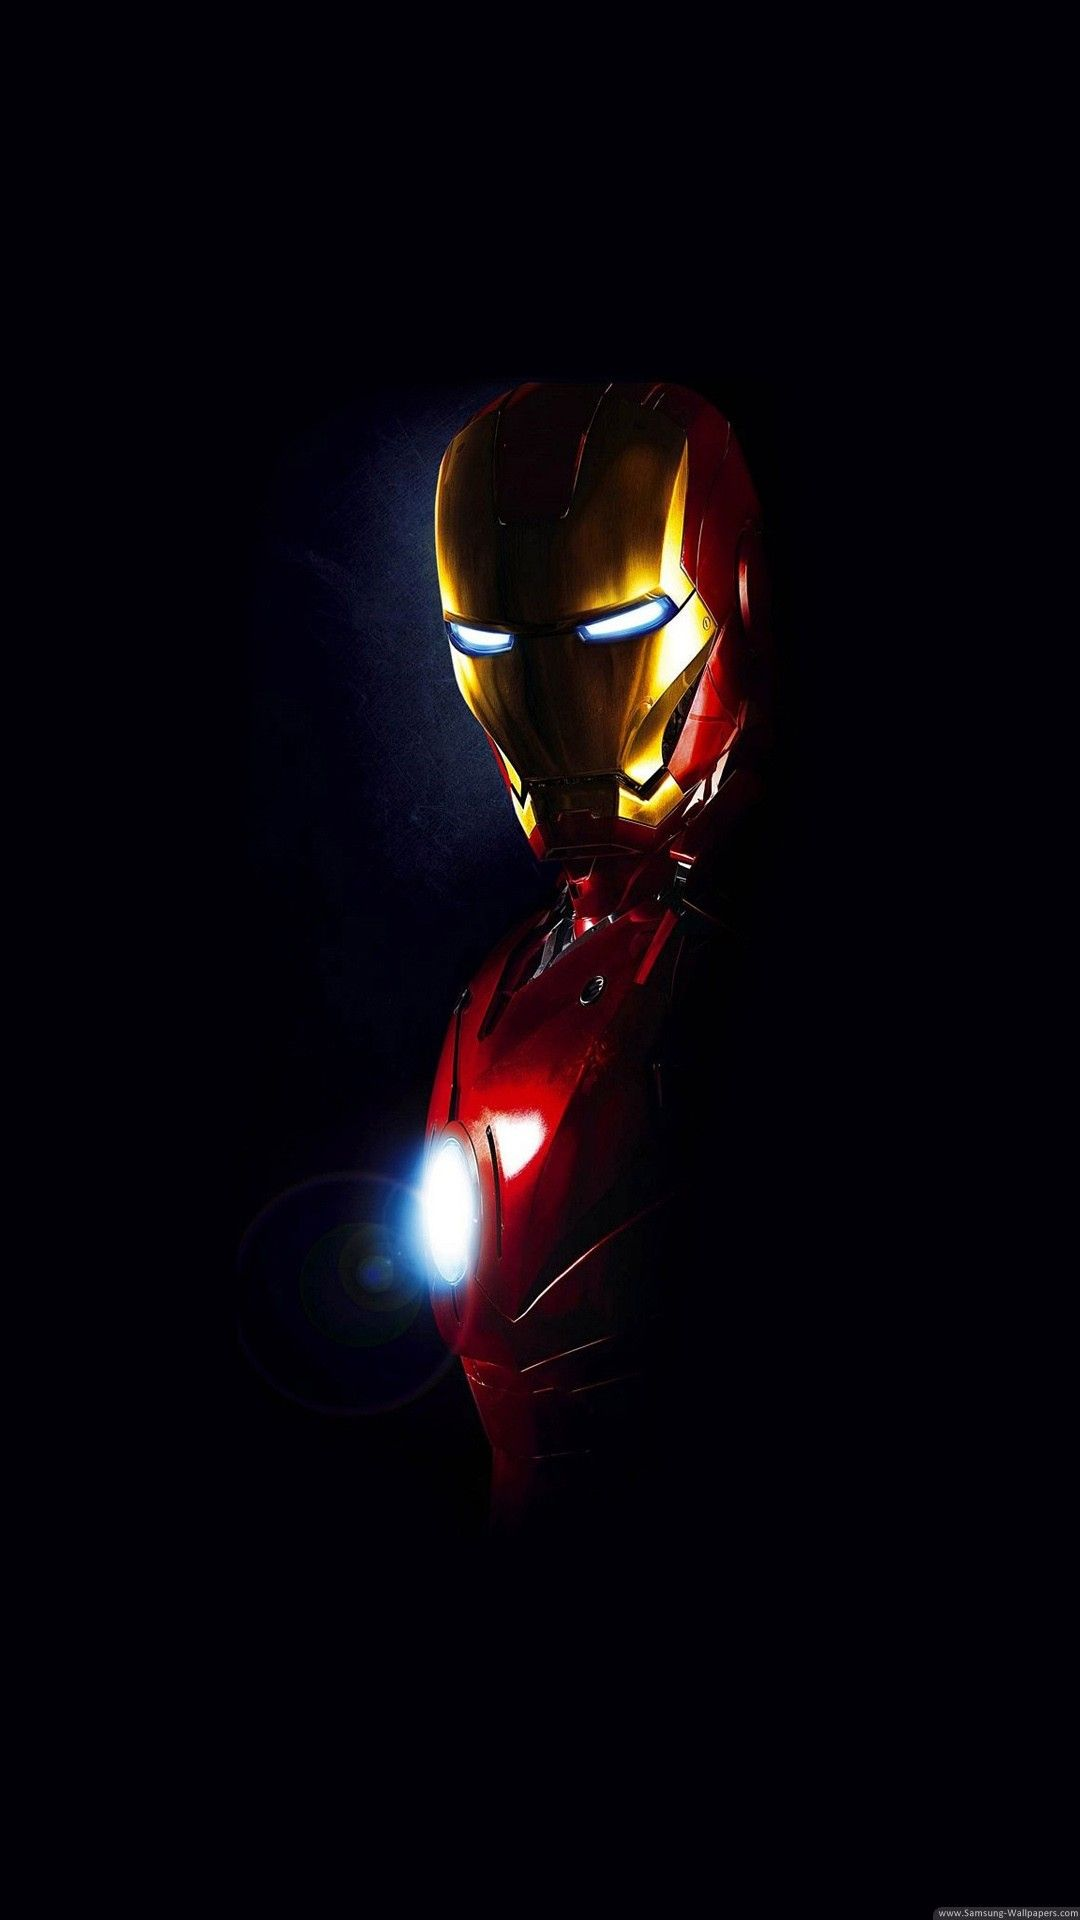 Hd wallpapers for iphone 6 - Movies Iphone 6 Plus Wallpapers Iron Man Arc Reactor Glow Iphone 6 Plus Hd Wallpaper